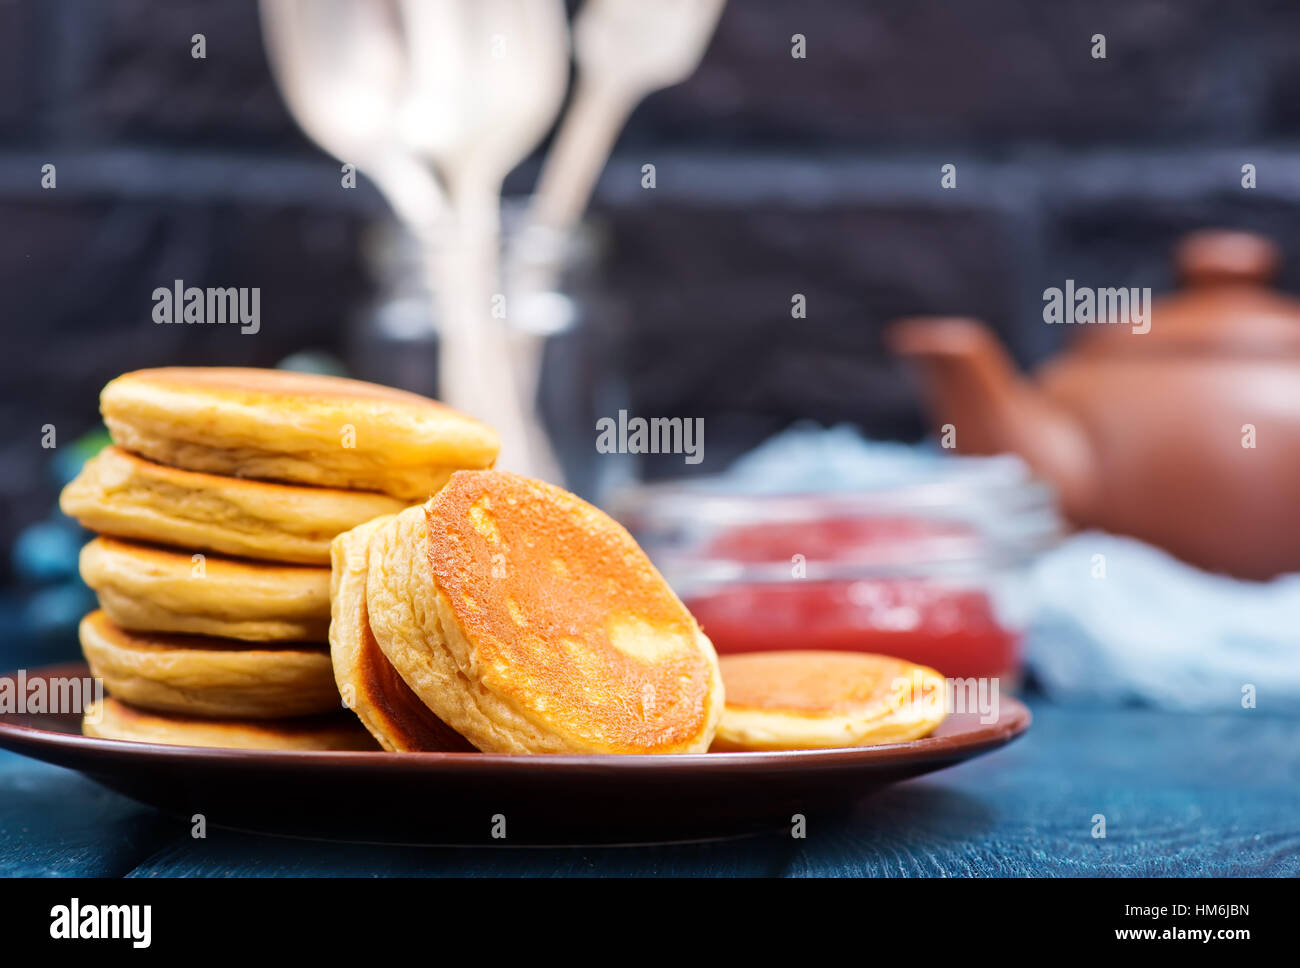 fresh pancakes on plate and on a table - Stock Image